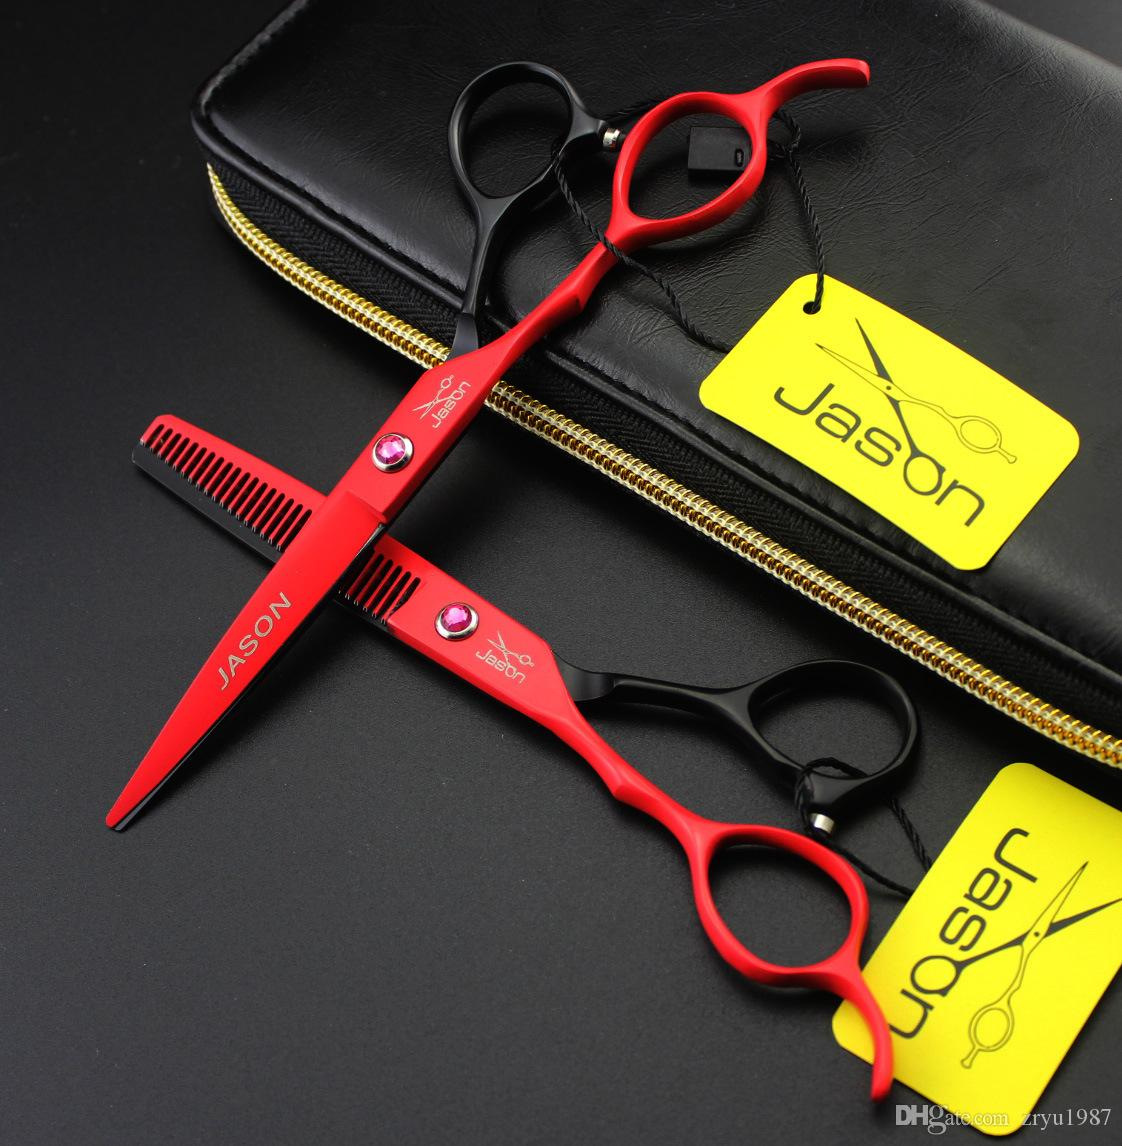 6 Inch Hairdressing Scissors Left Handle Japan Stainless Steel Professional Cutting Thinning Shears Black Barber hair scissors